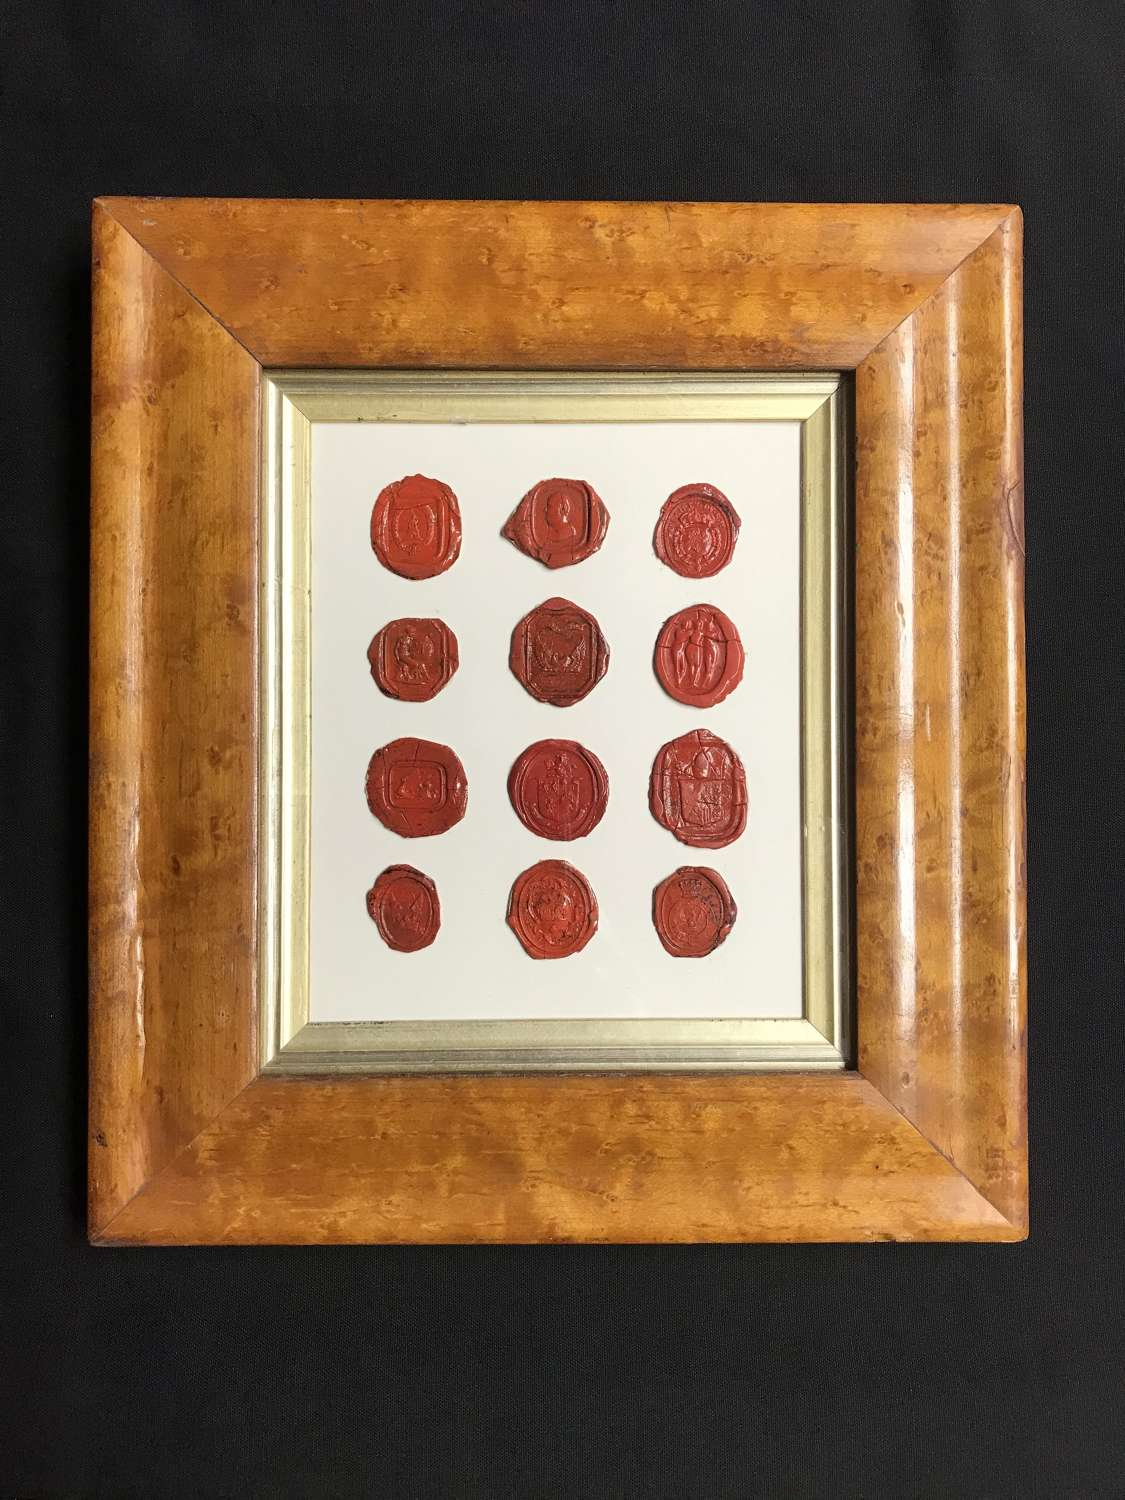 Framed Red wax seals